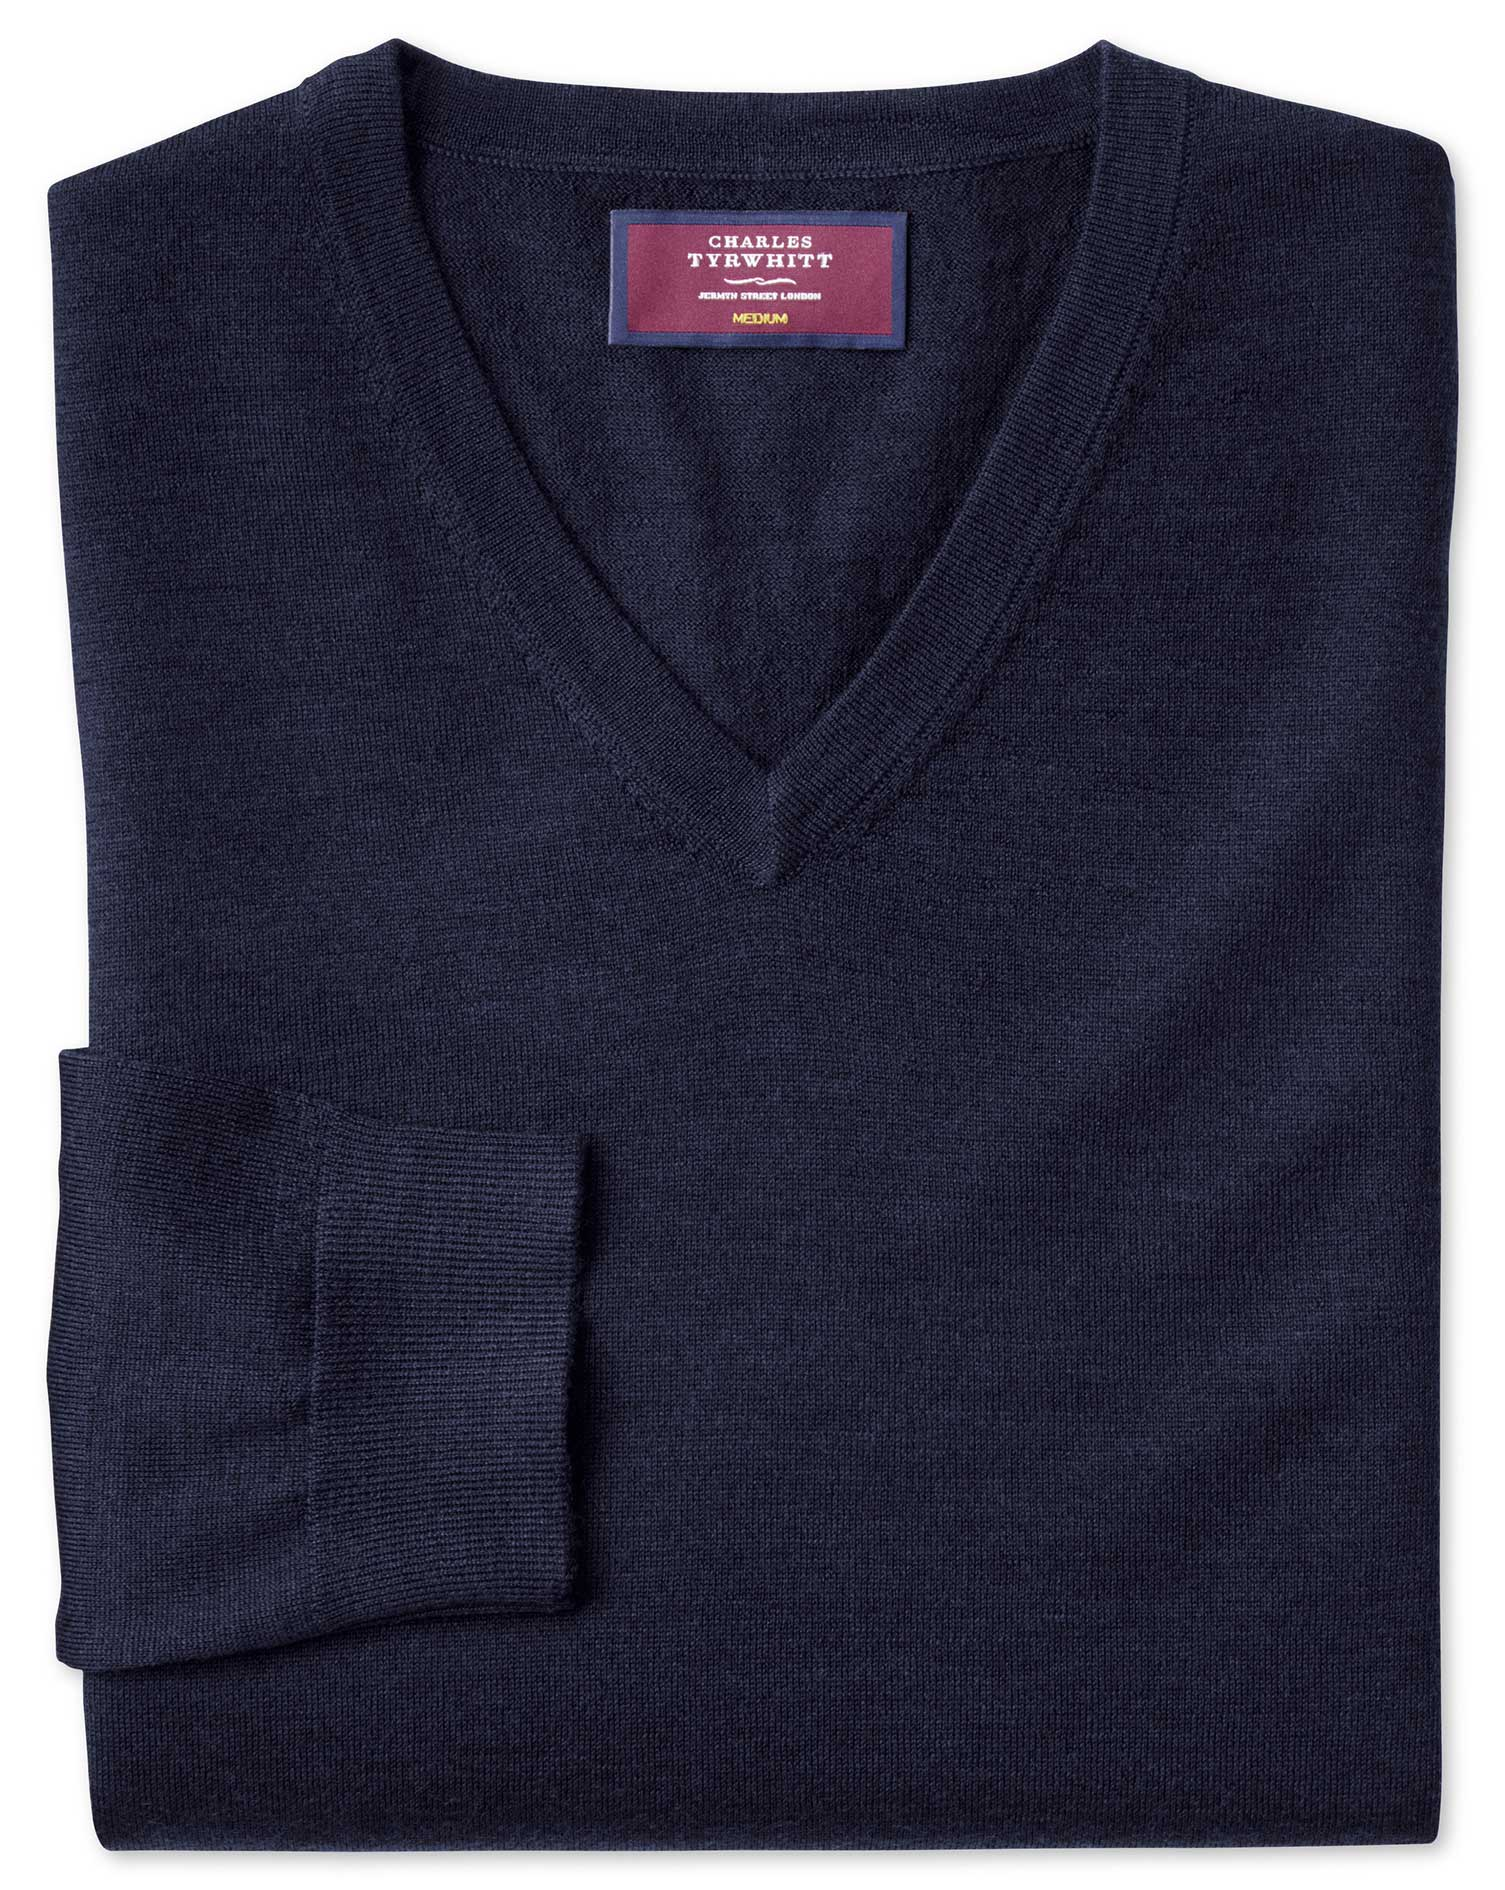 Navy Merino Silk V-Neck Jumper Size Large by Charles Tyrwhitt